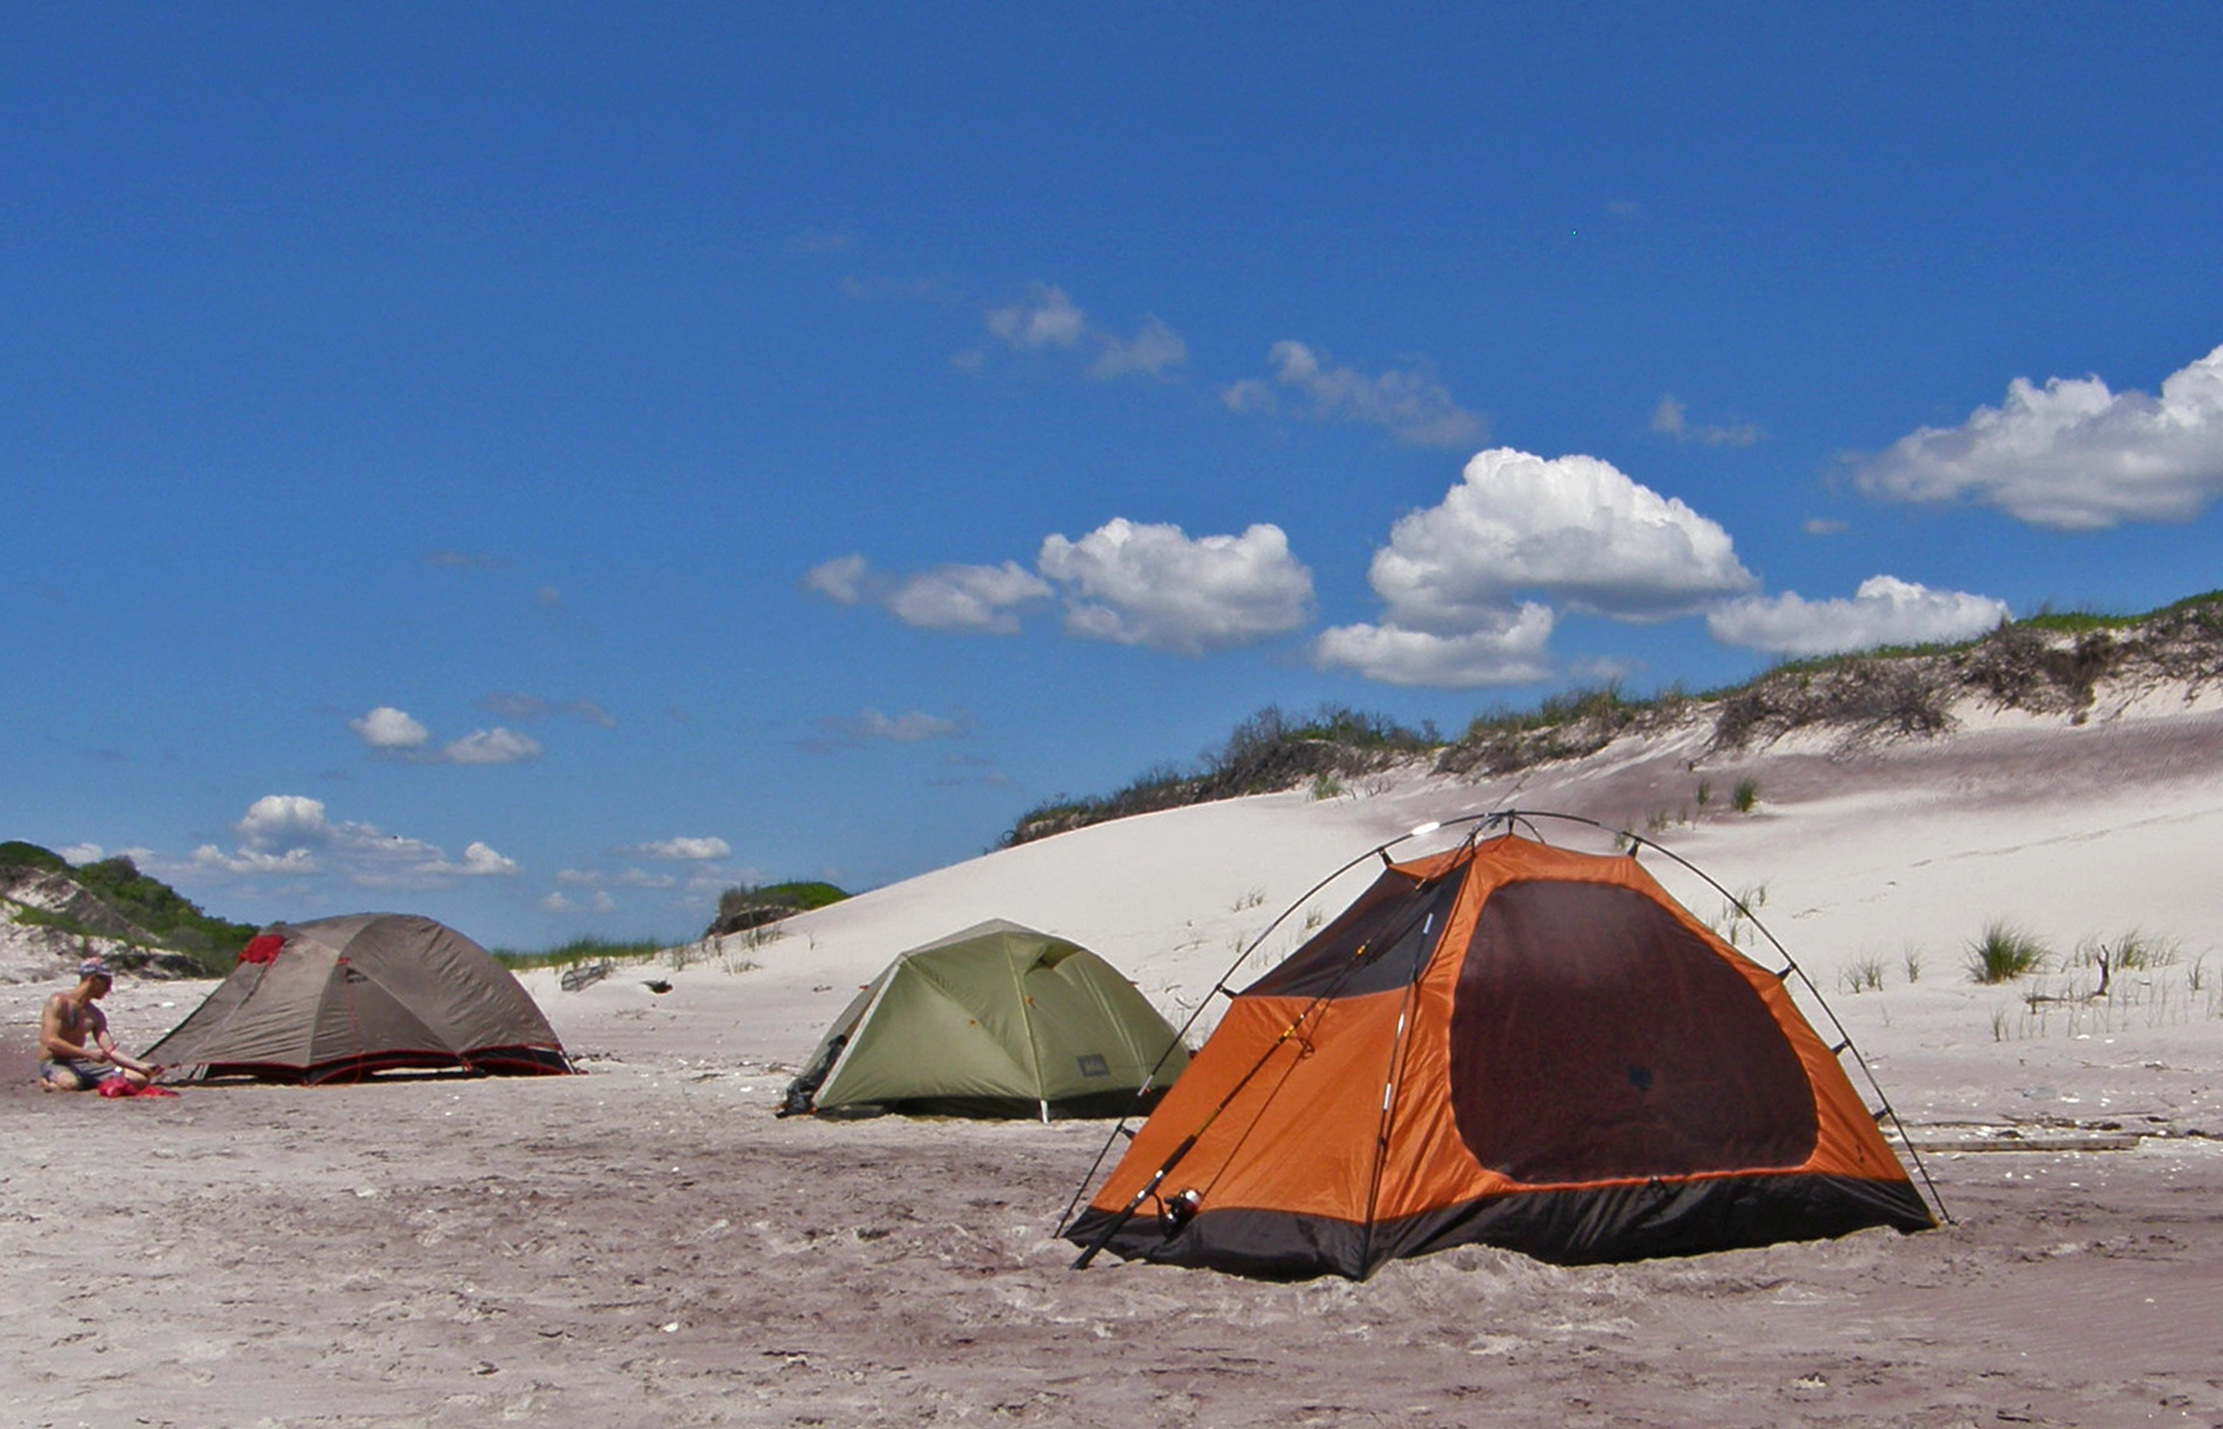 There are three ways to enjoy camping on Fire Island